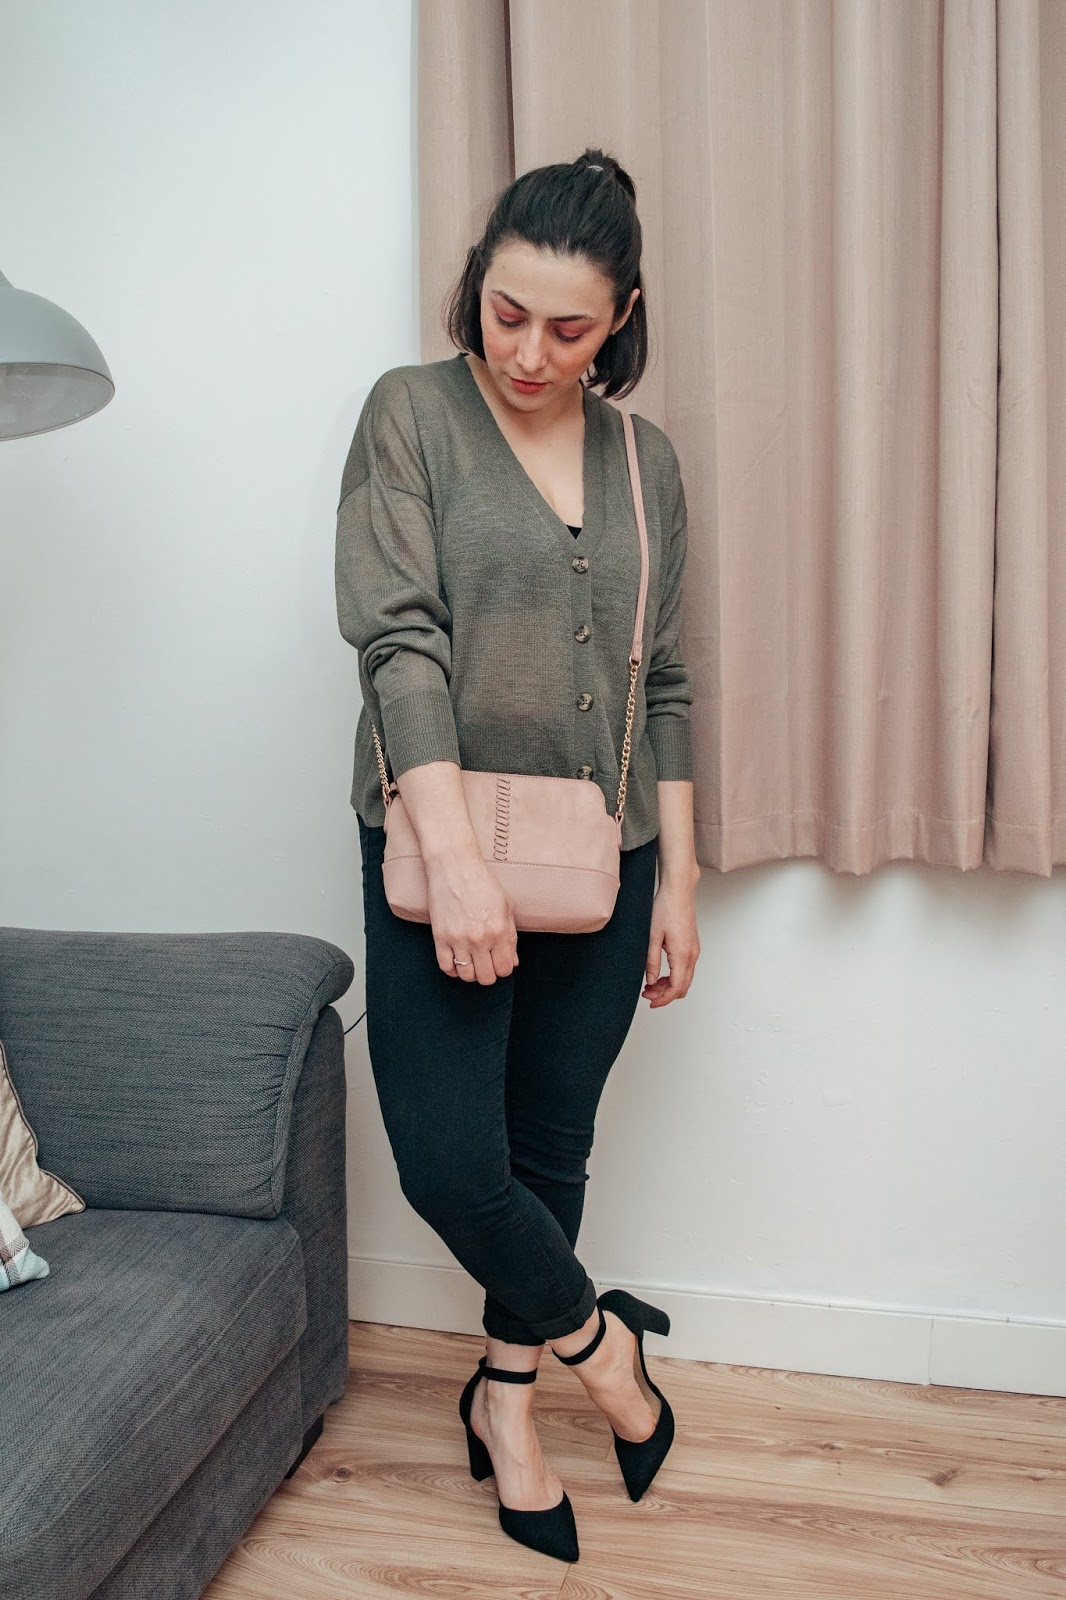 Standing styling a khaki green boxy cardigan with black jeans, black heels and a pink cross body bag.